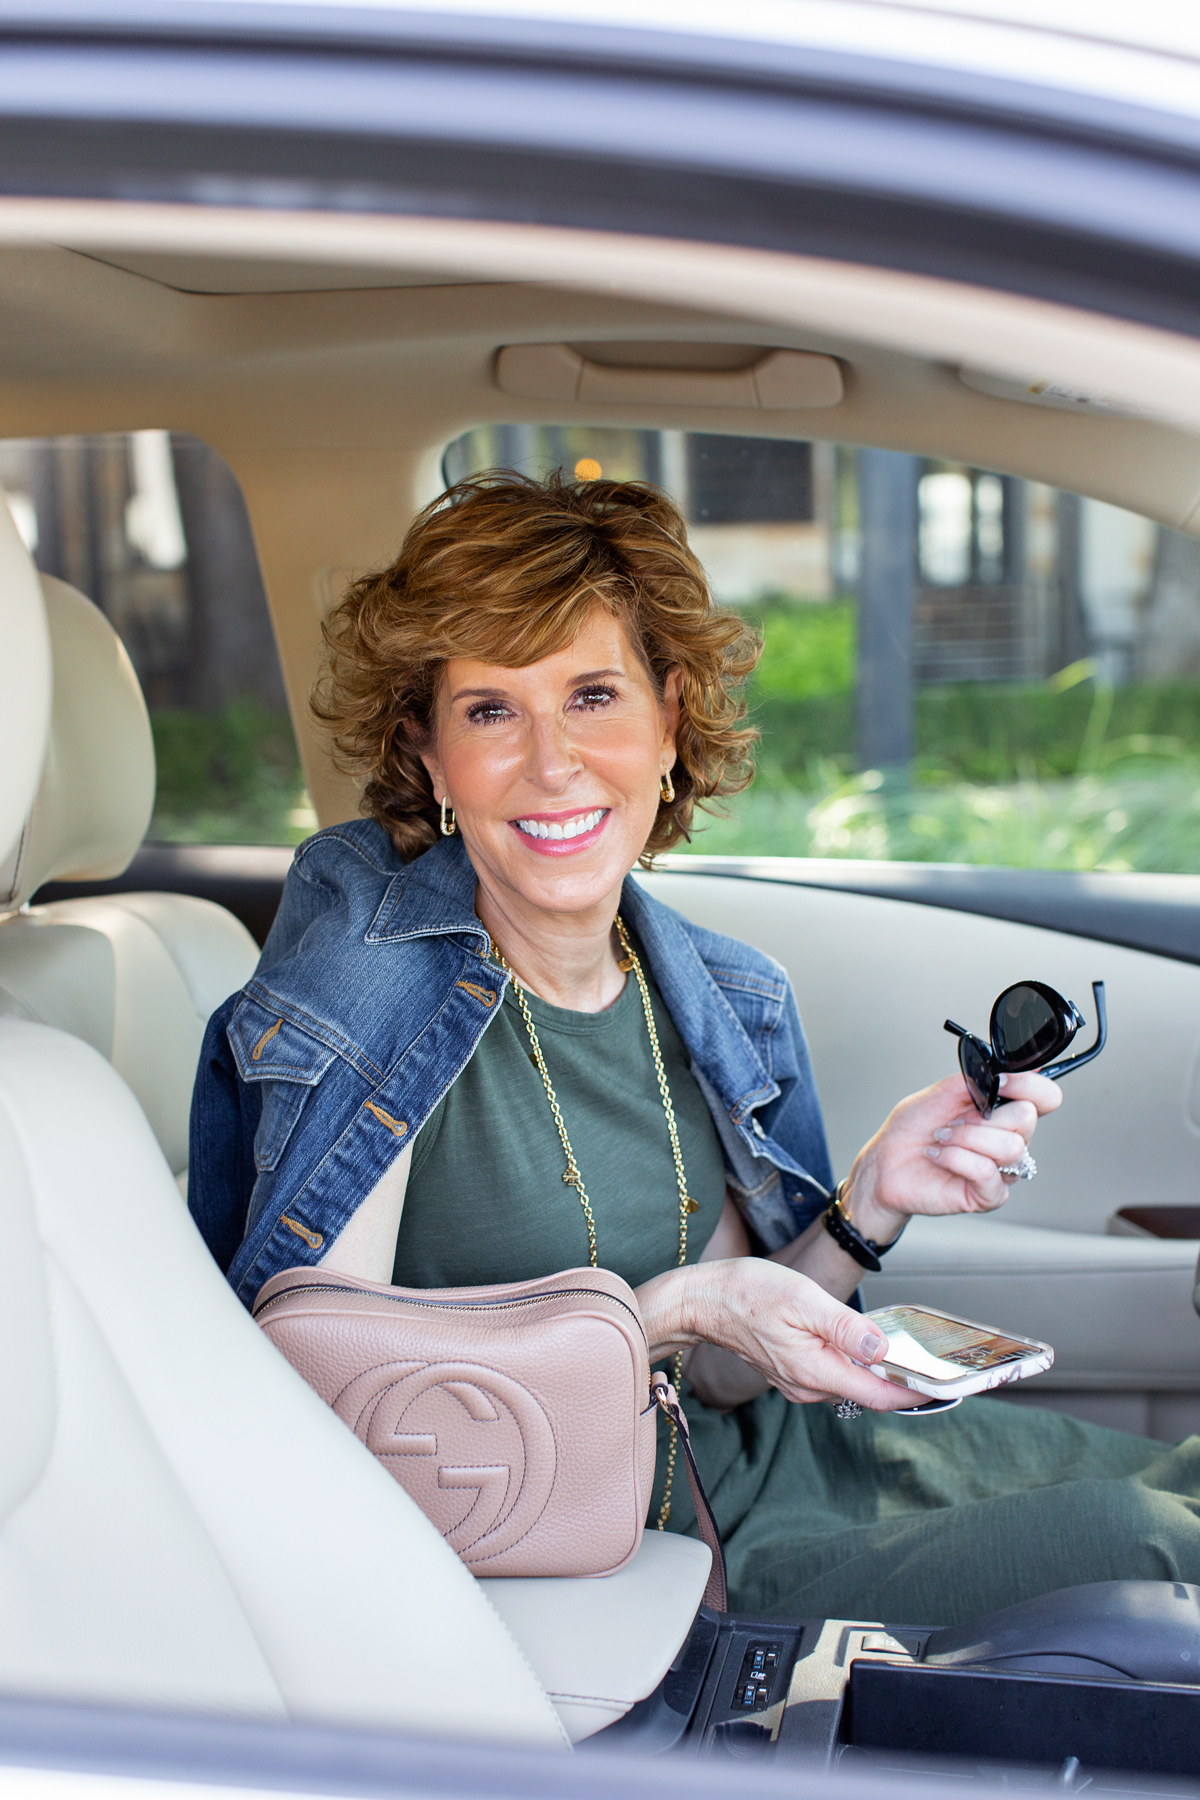 woman in green dress and denim jacket sitting in her car holding her phone looking at camera